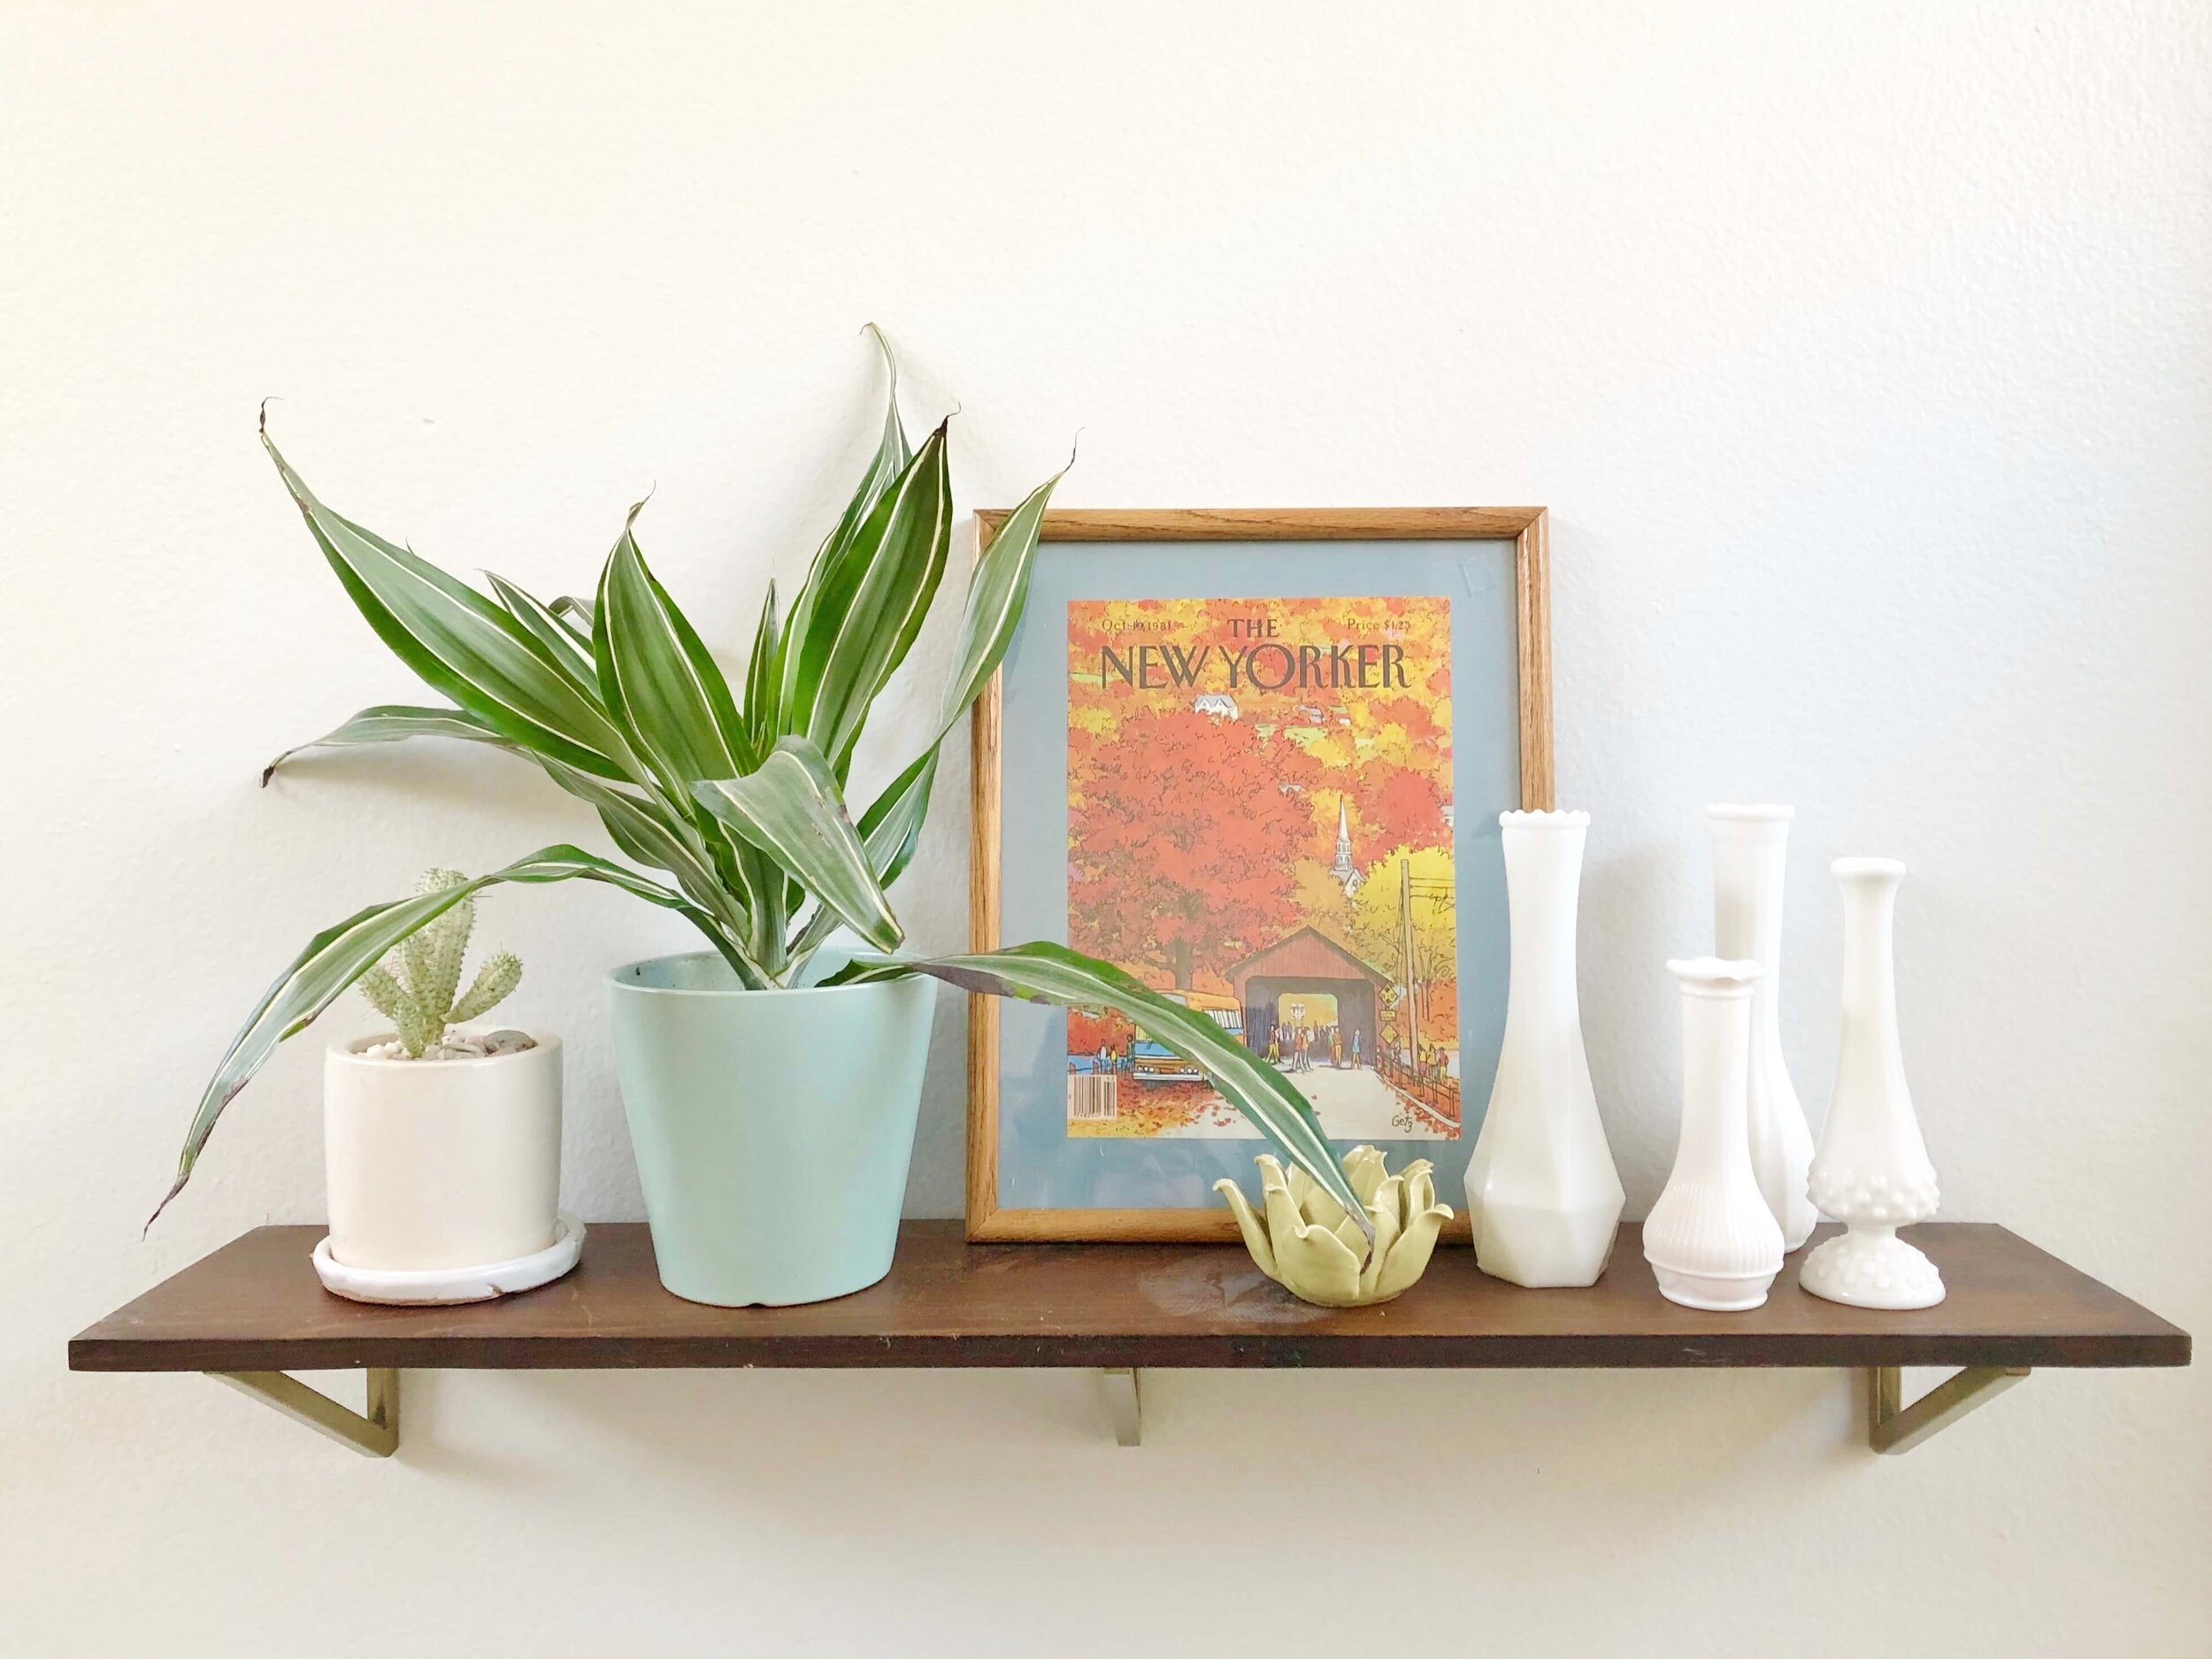 Shelf styling with a modern boho look. Lots of plants, some vintage items and a few modern, clean lined elements help pull together this style and make it easy to live with. #modernboho #shelfstyling #milkglass